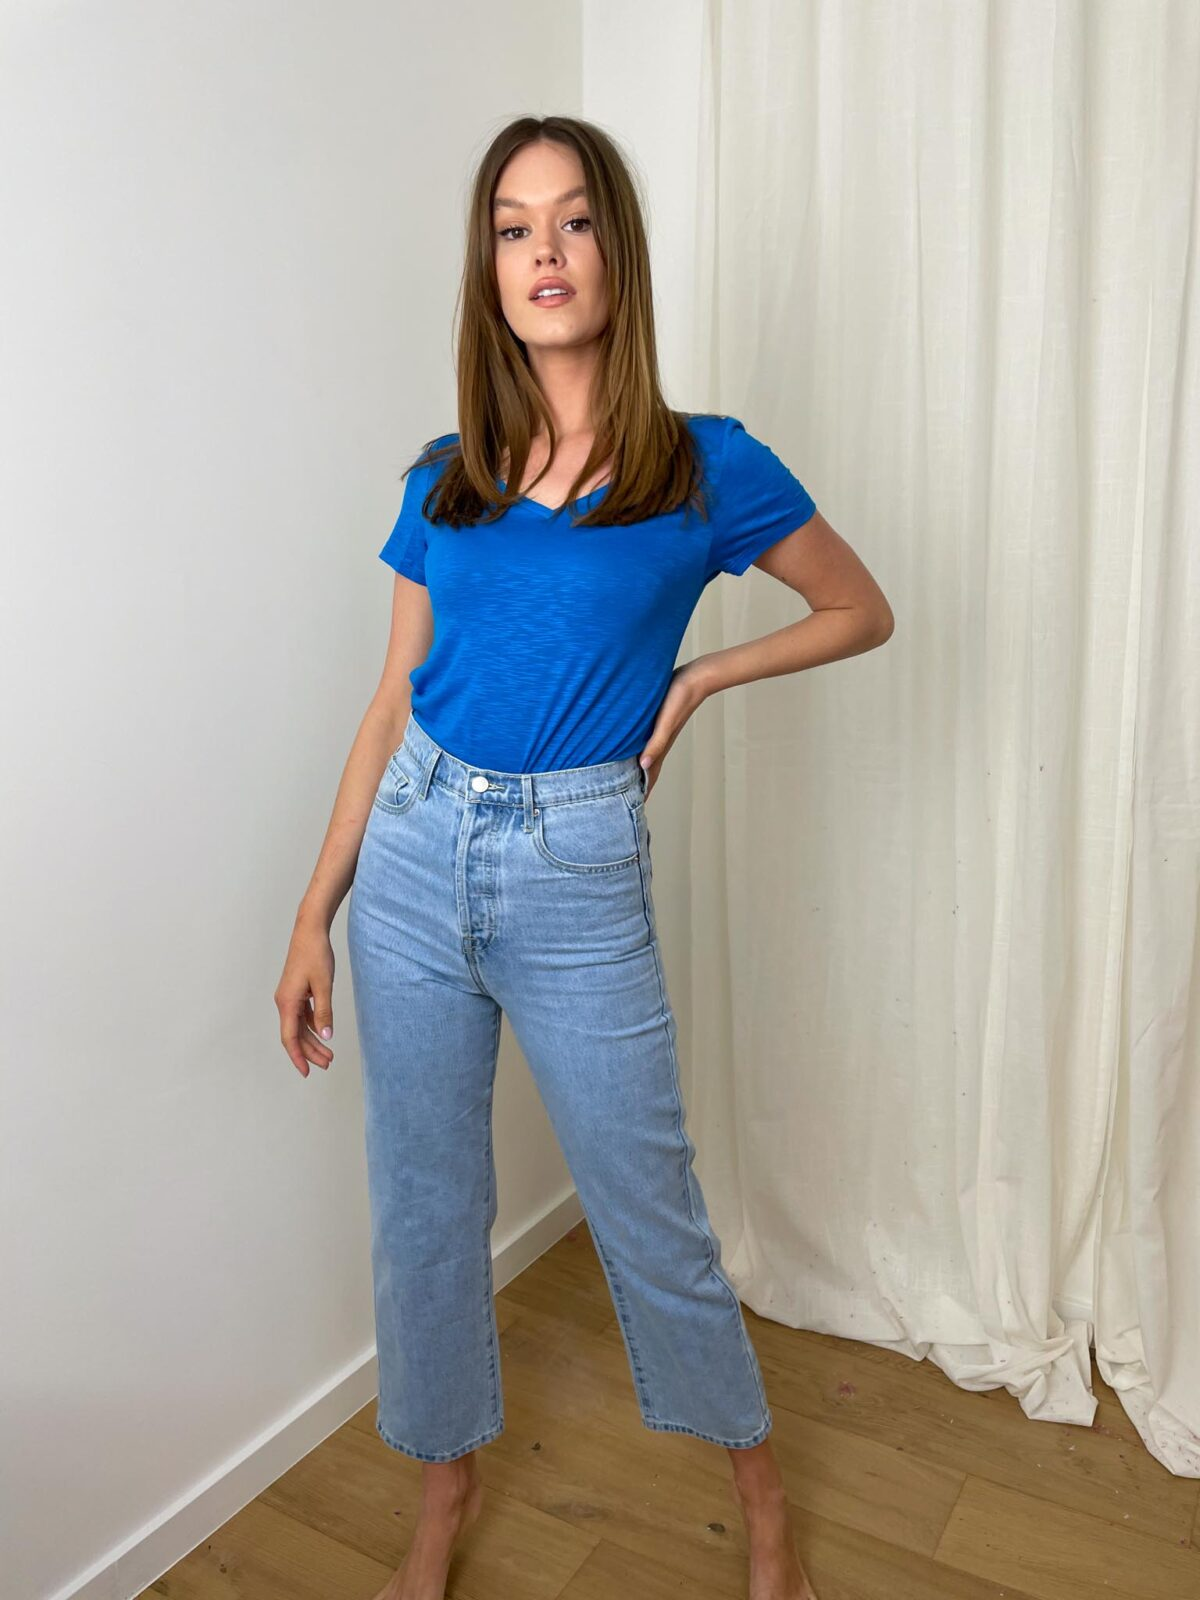 woman with a blue tshirt and denim pants